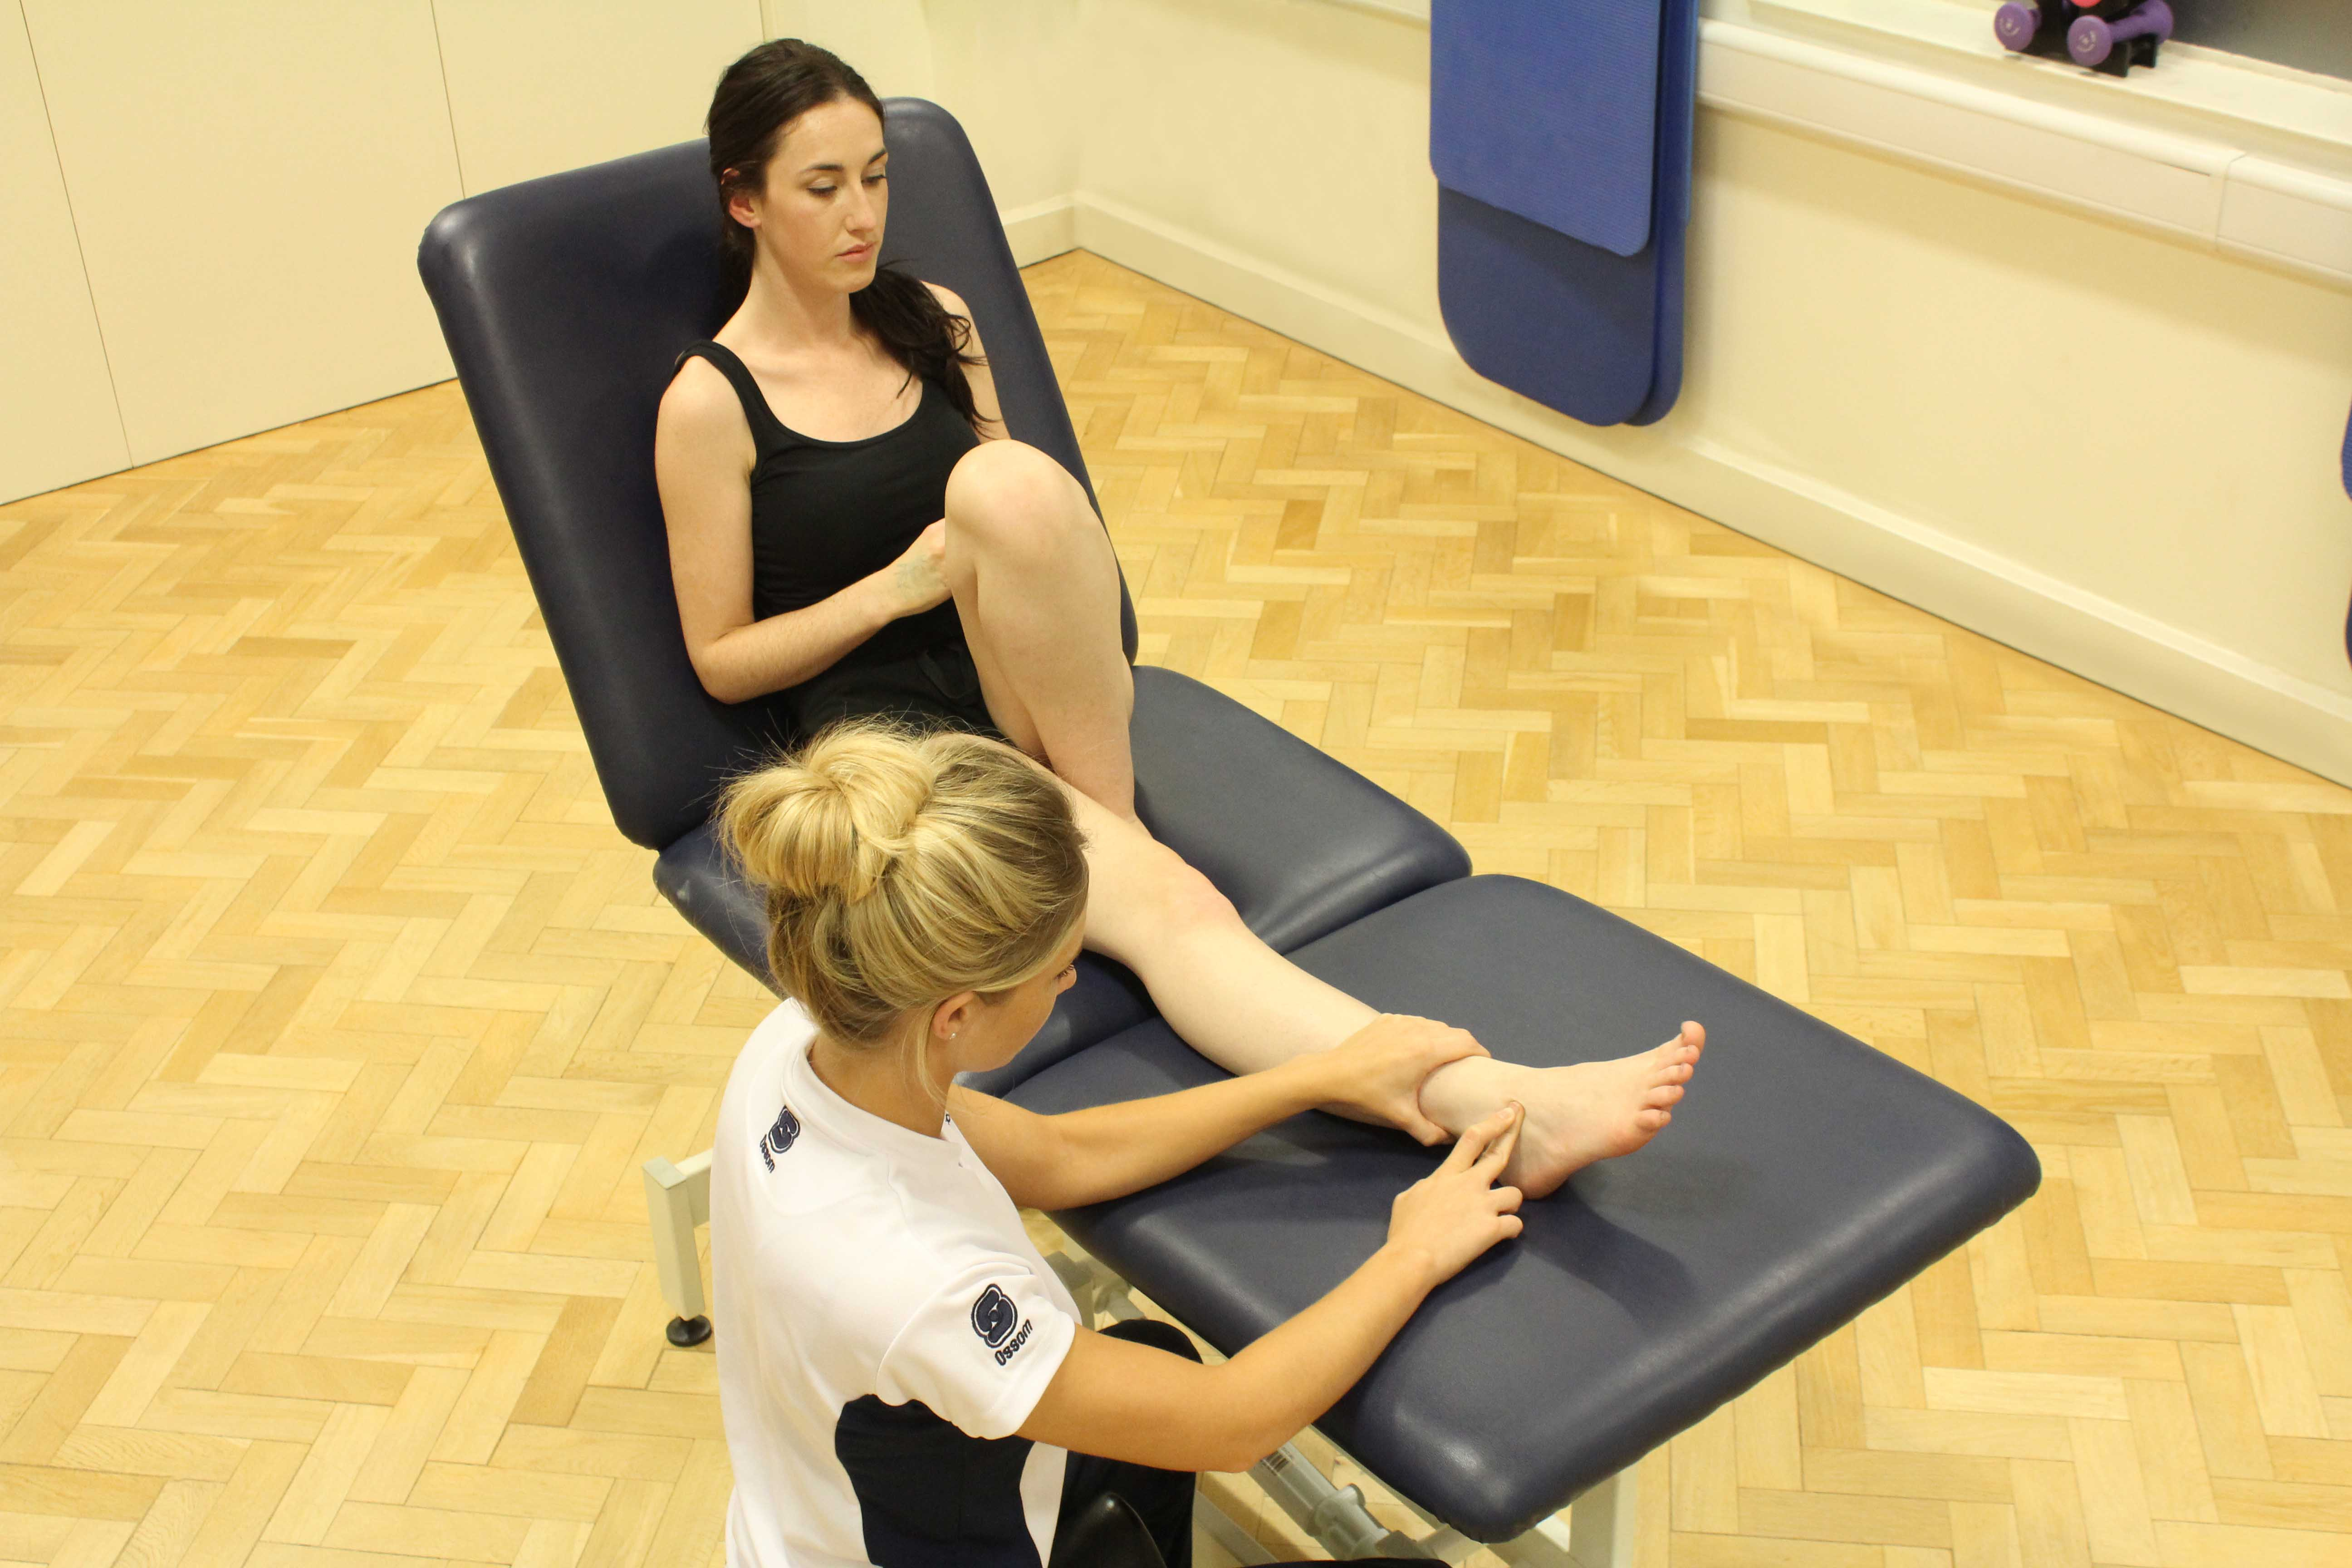 Transverse friction massage applied to ankle ligaments to reduce mobility limiting pain